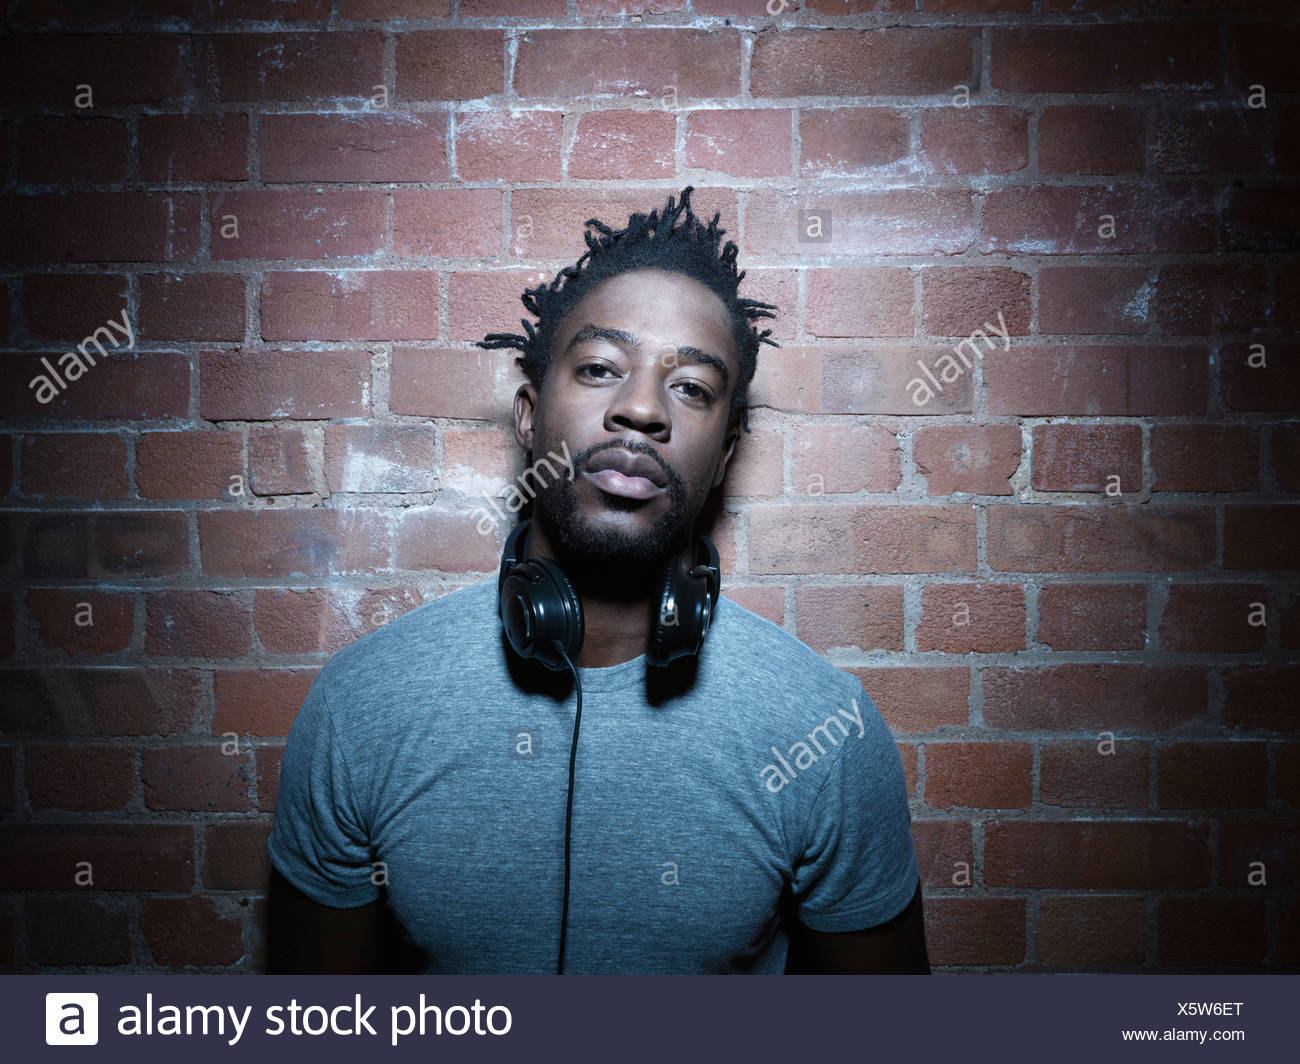 Man wearing headphones around neck - Stock Image